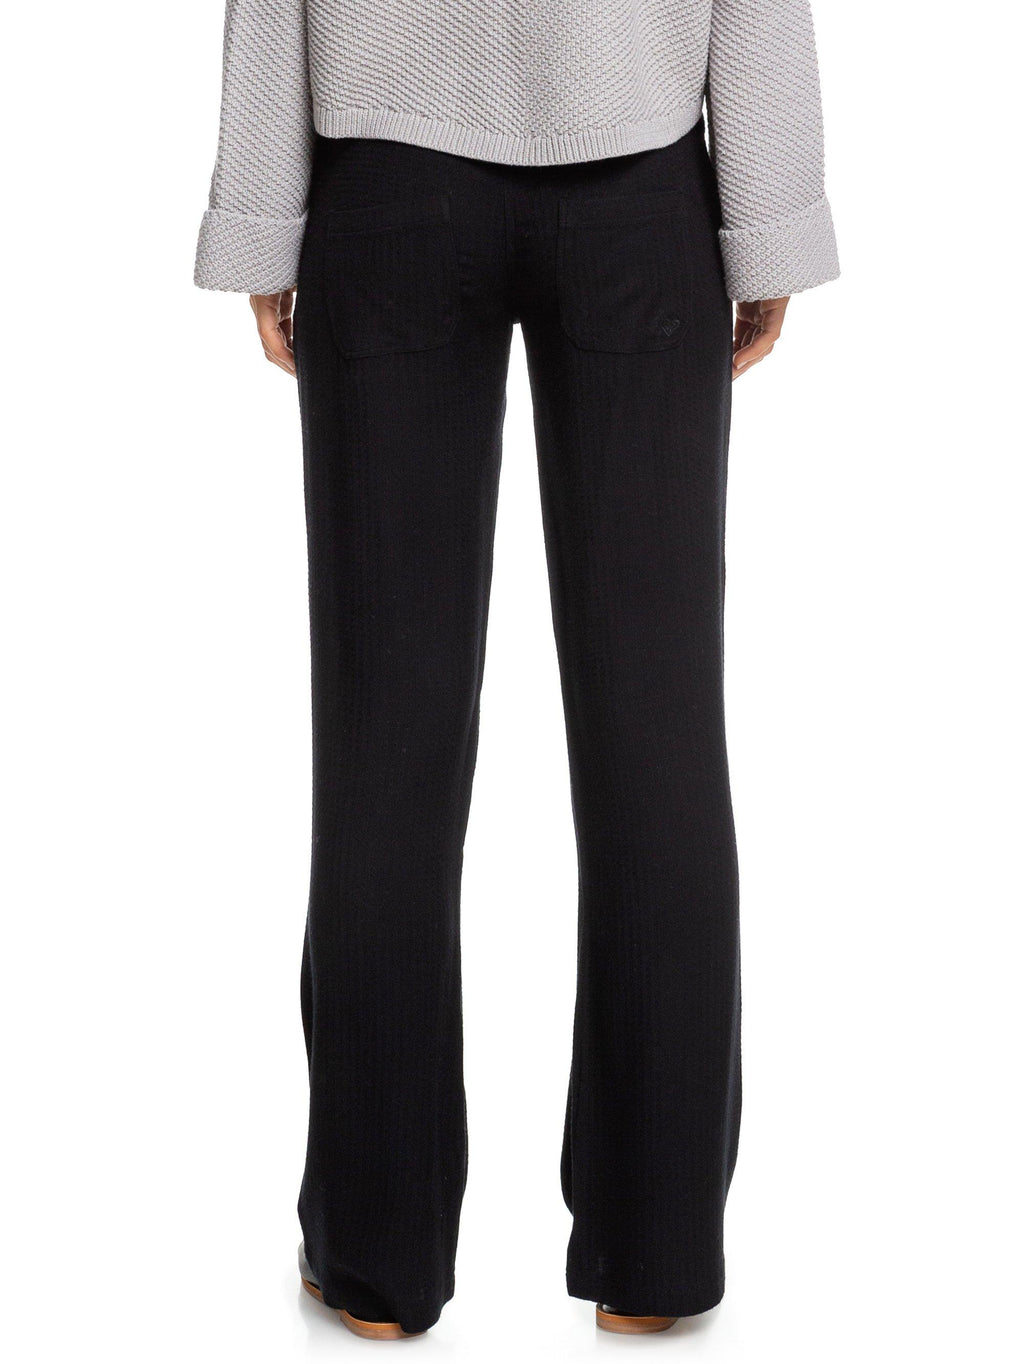 Roxy Oceanside Flared Linen Pants - Women's